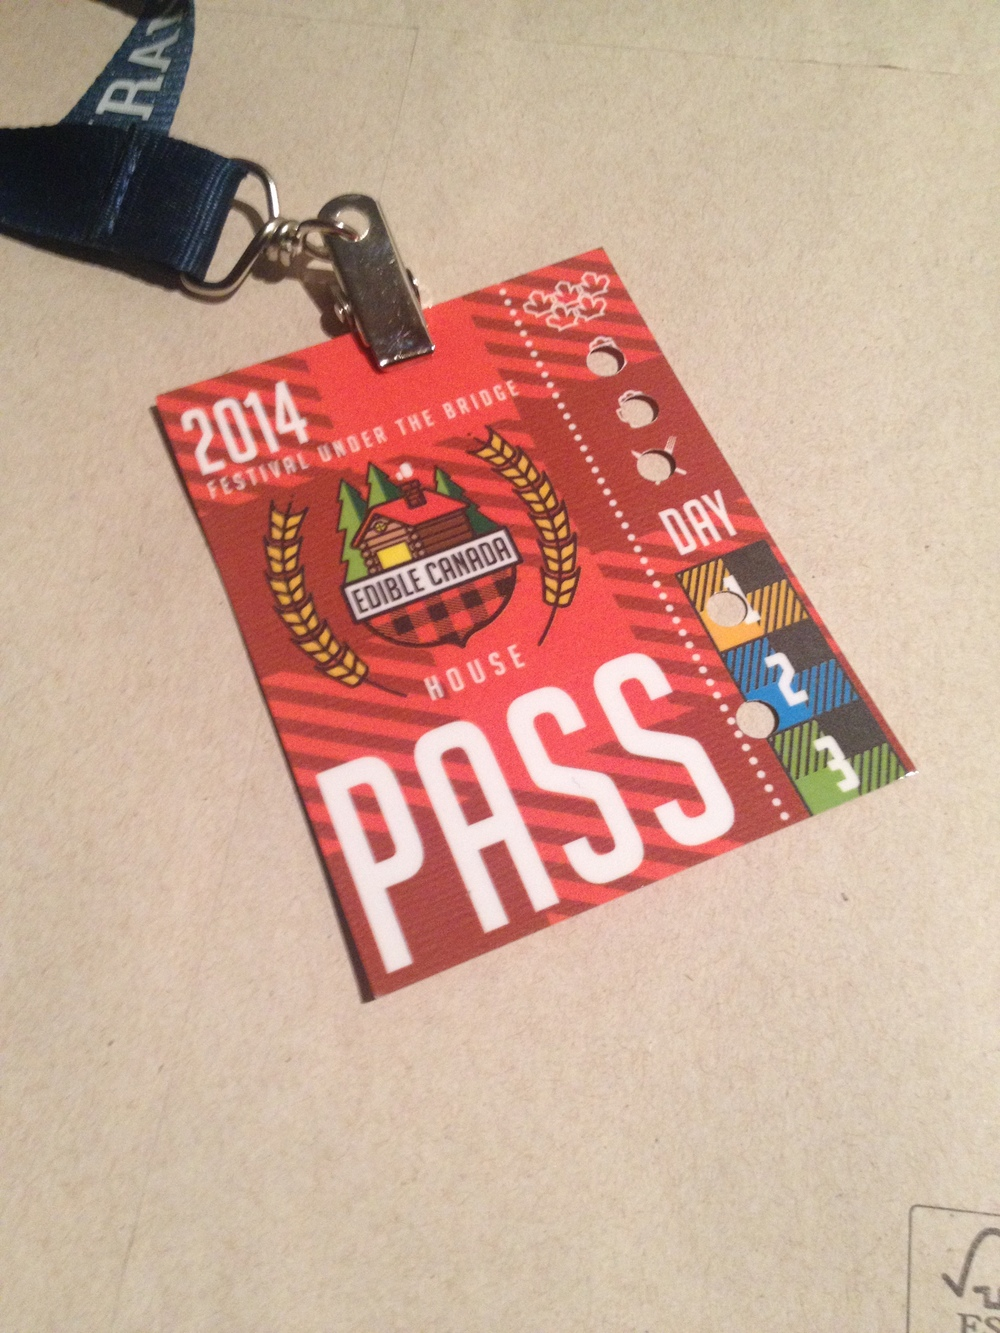 The all access pass... 3 days, 2 drinks and a meal